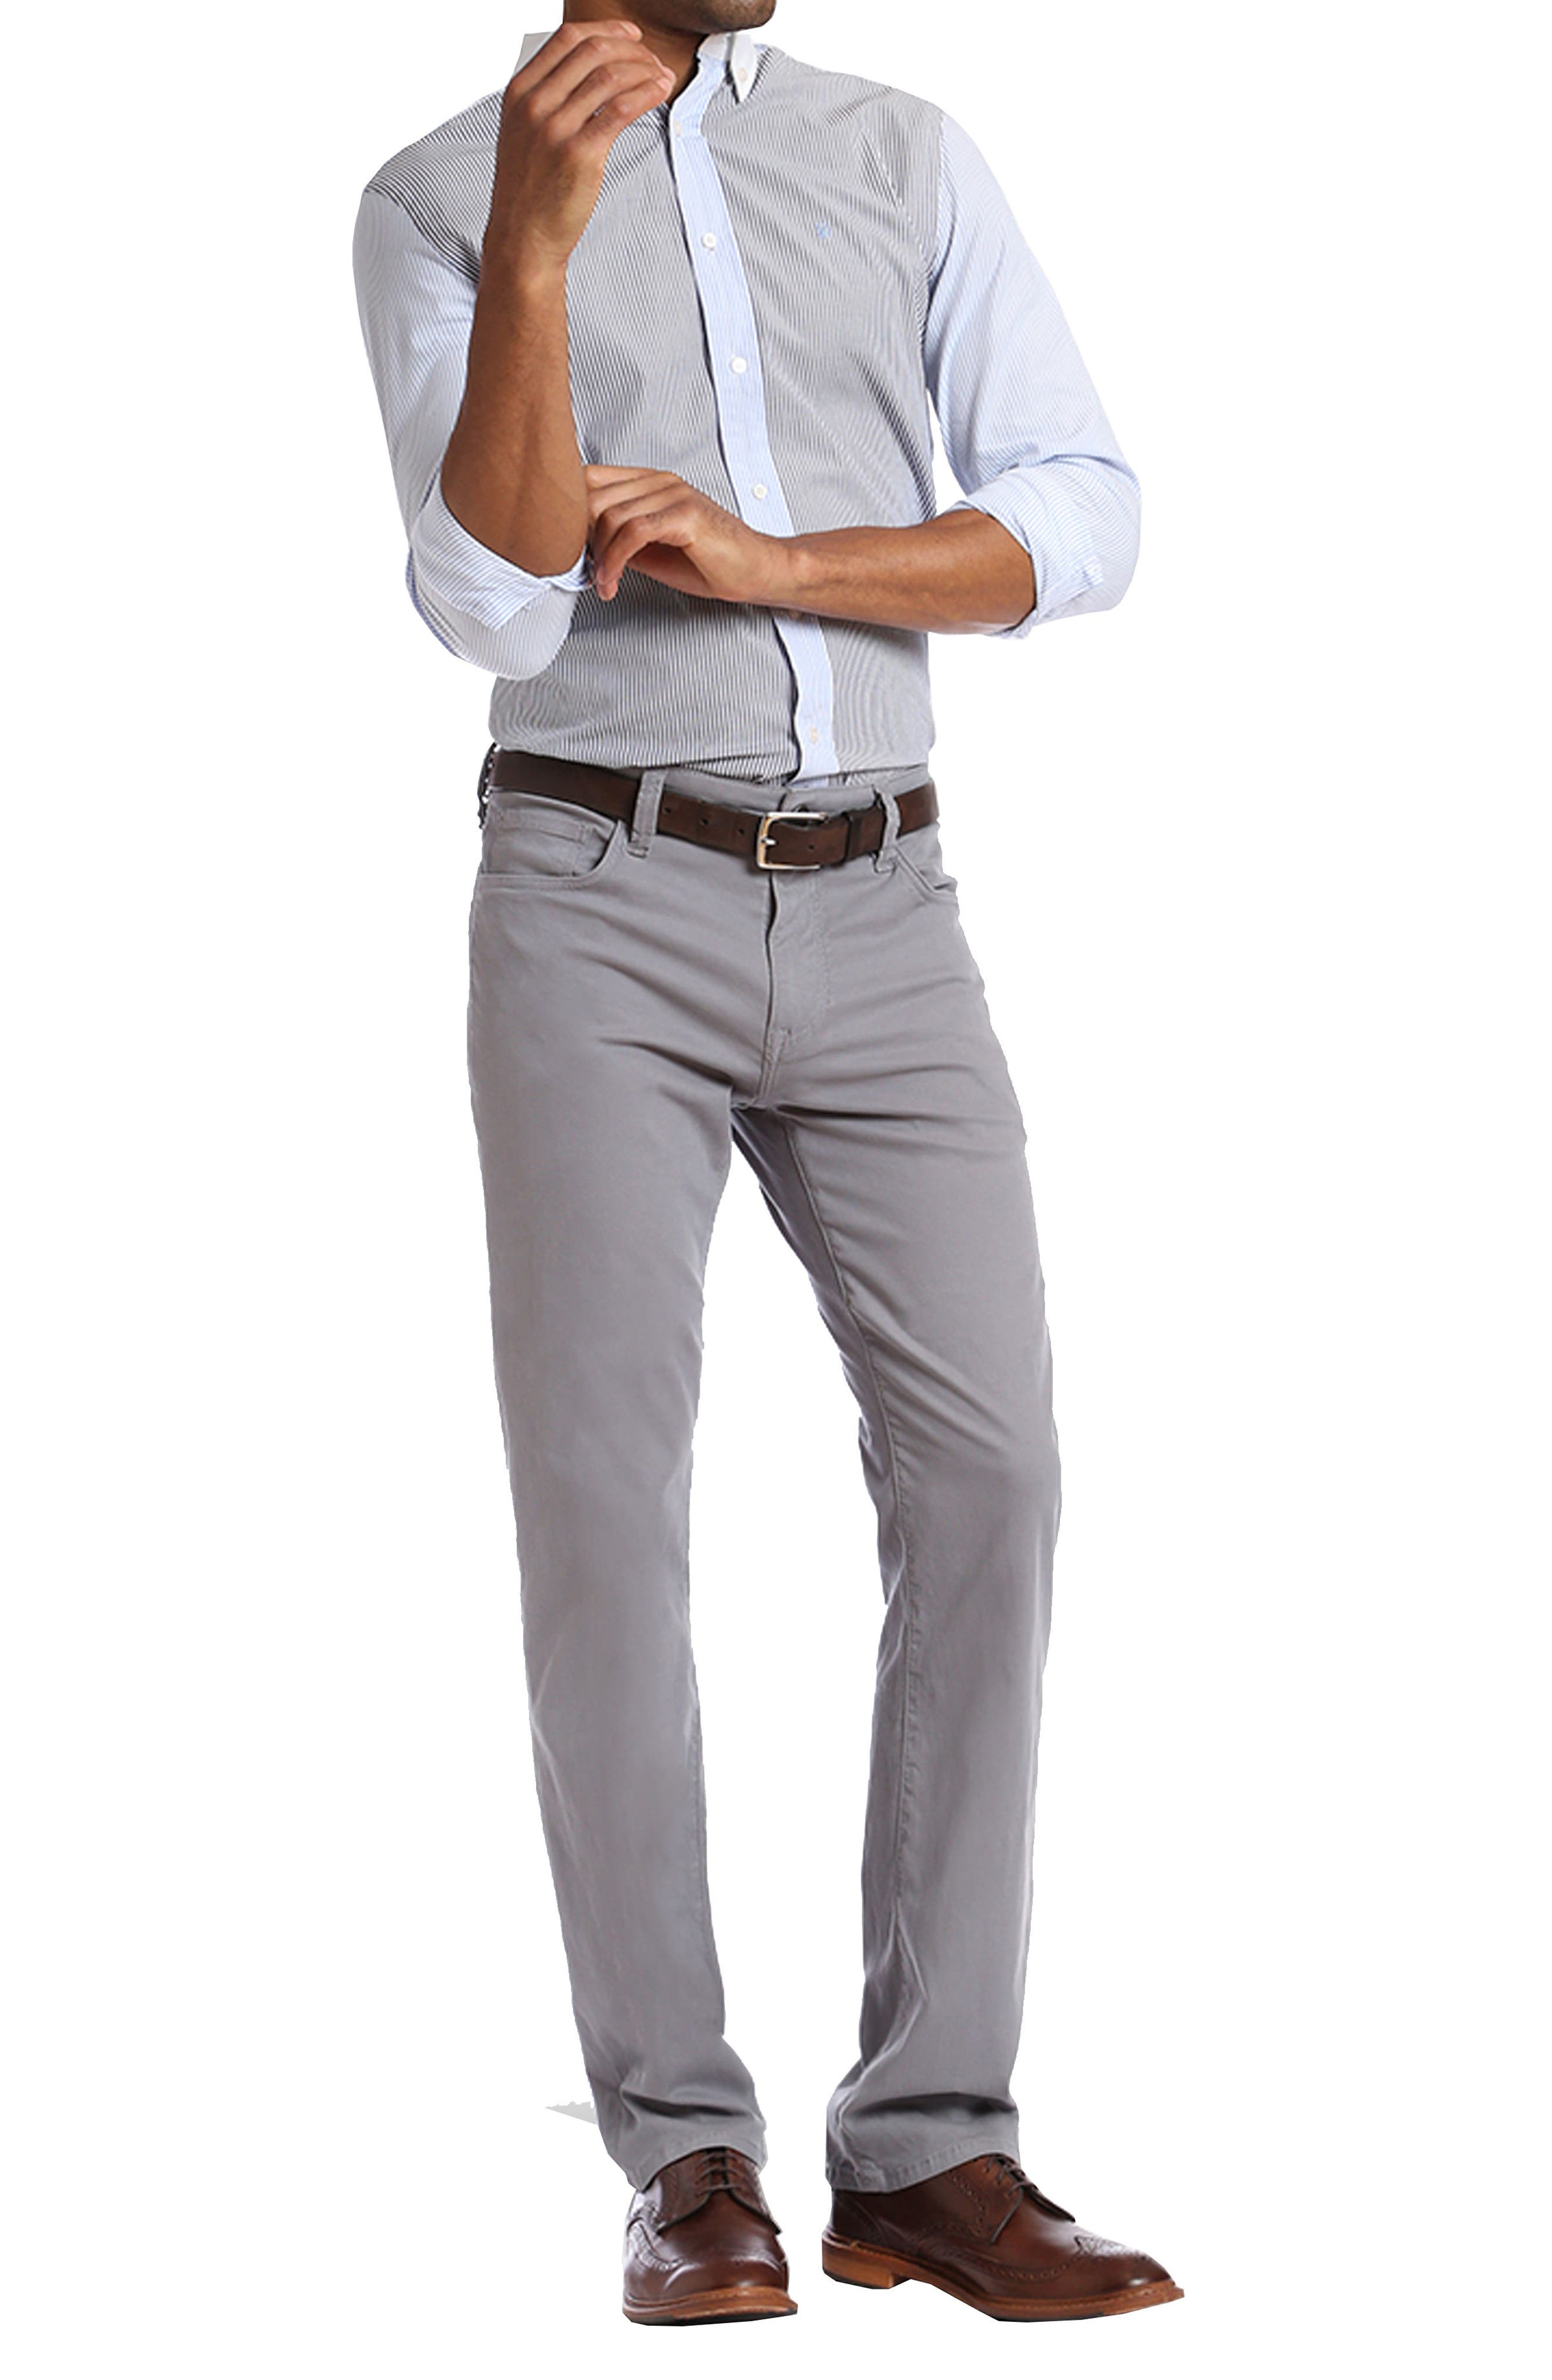 Courage Straight Leg Twill Pants,                             Alternate thumbnail 4, color,                             GREY FINE TWILL